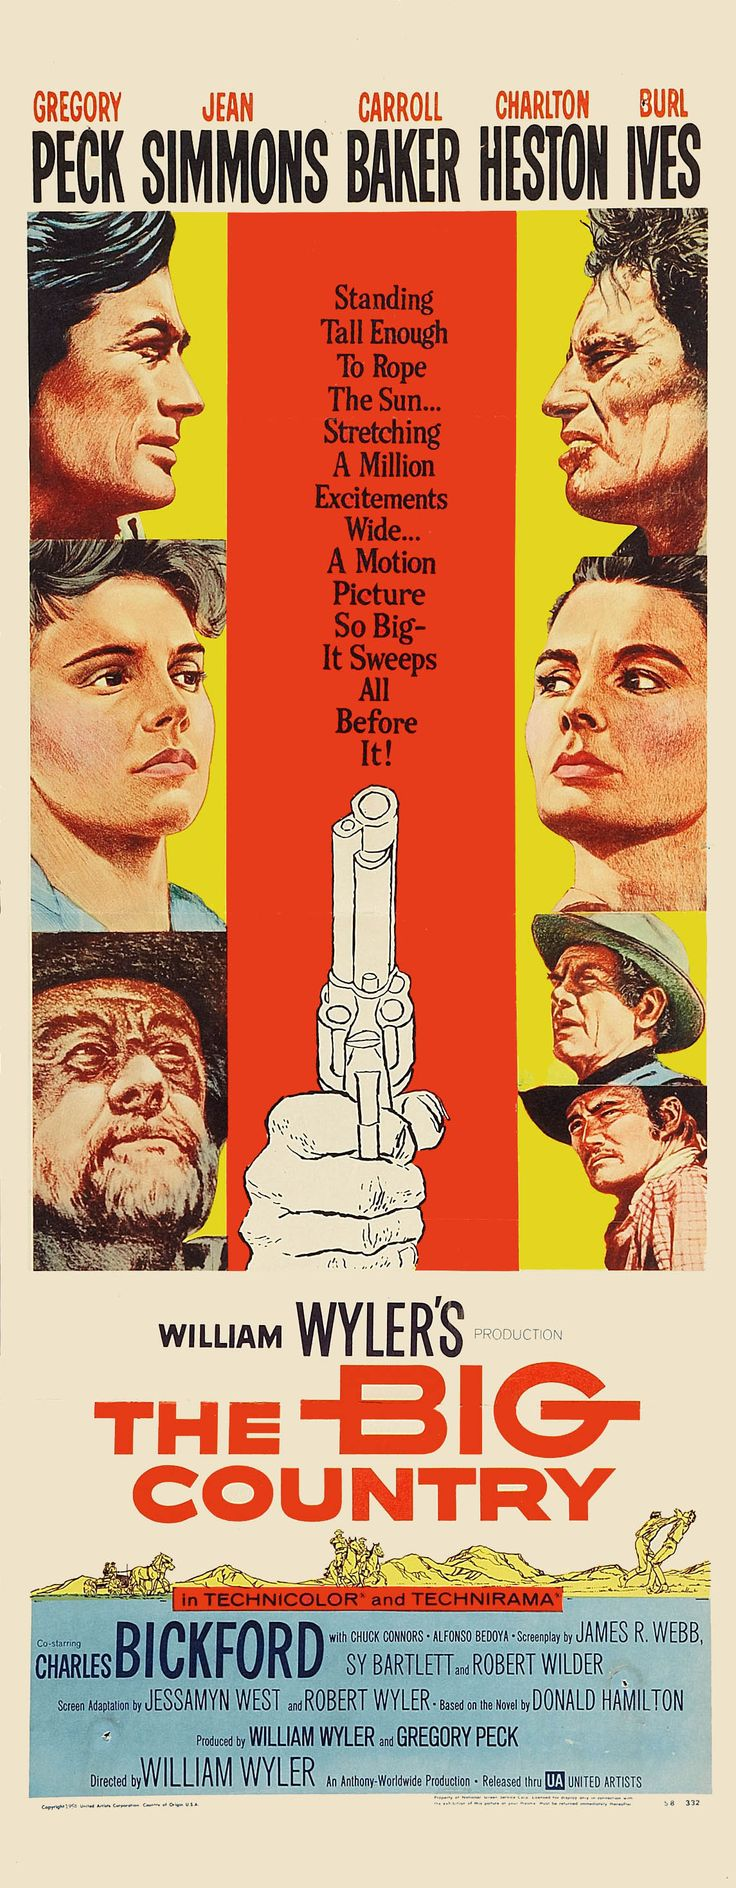 """Horizontes de grandeza """"The Big Country"""" (1958). COUNTRY: United States. DIRECTOR: William Wyler. SCREENWRITER: James R. Webb, Robert Wyler, Sy Bartlett. CAST: Gregory Peck, Charlton Heston, Jean Simmons, Burl Ives, Carroll Baker, Chuck Connors"""